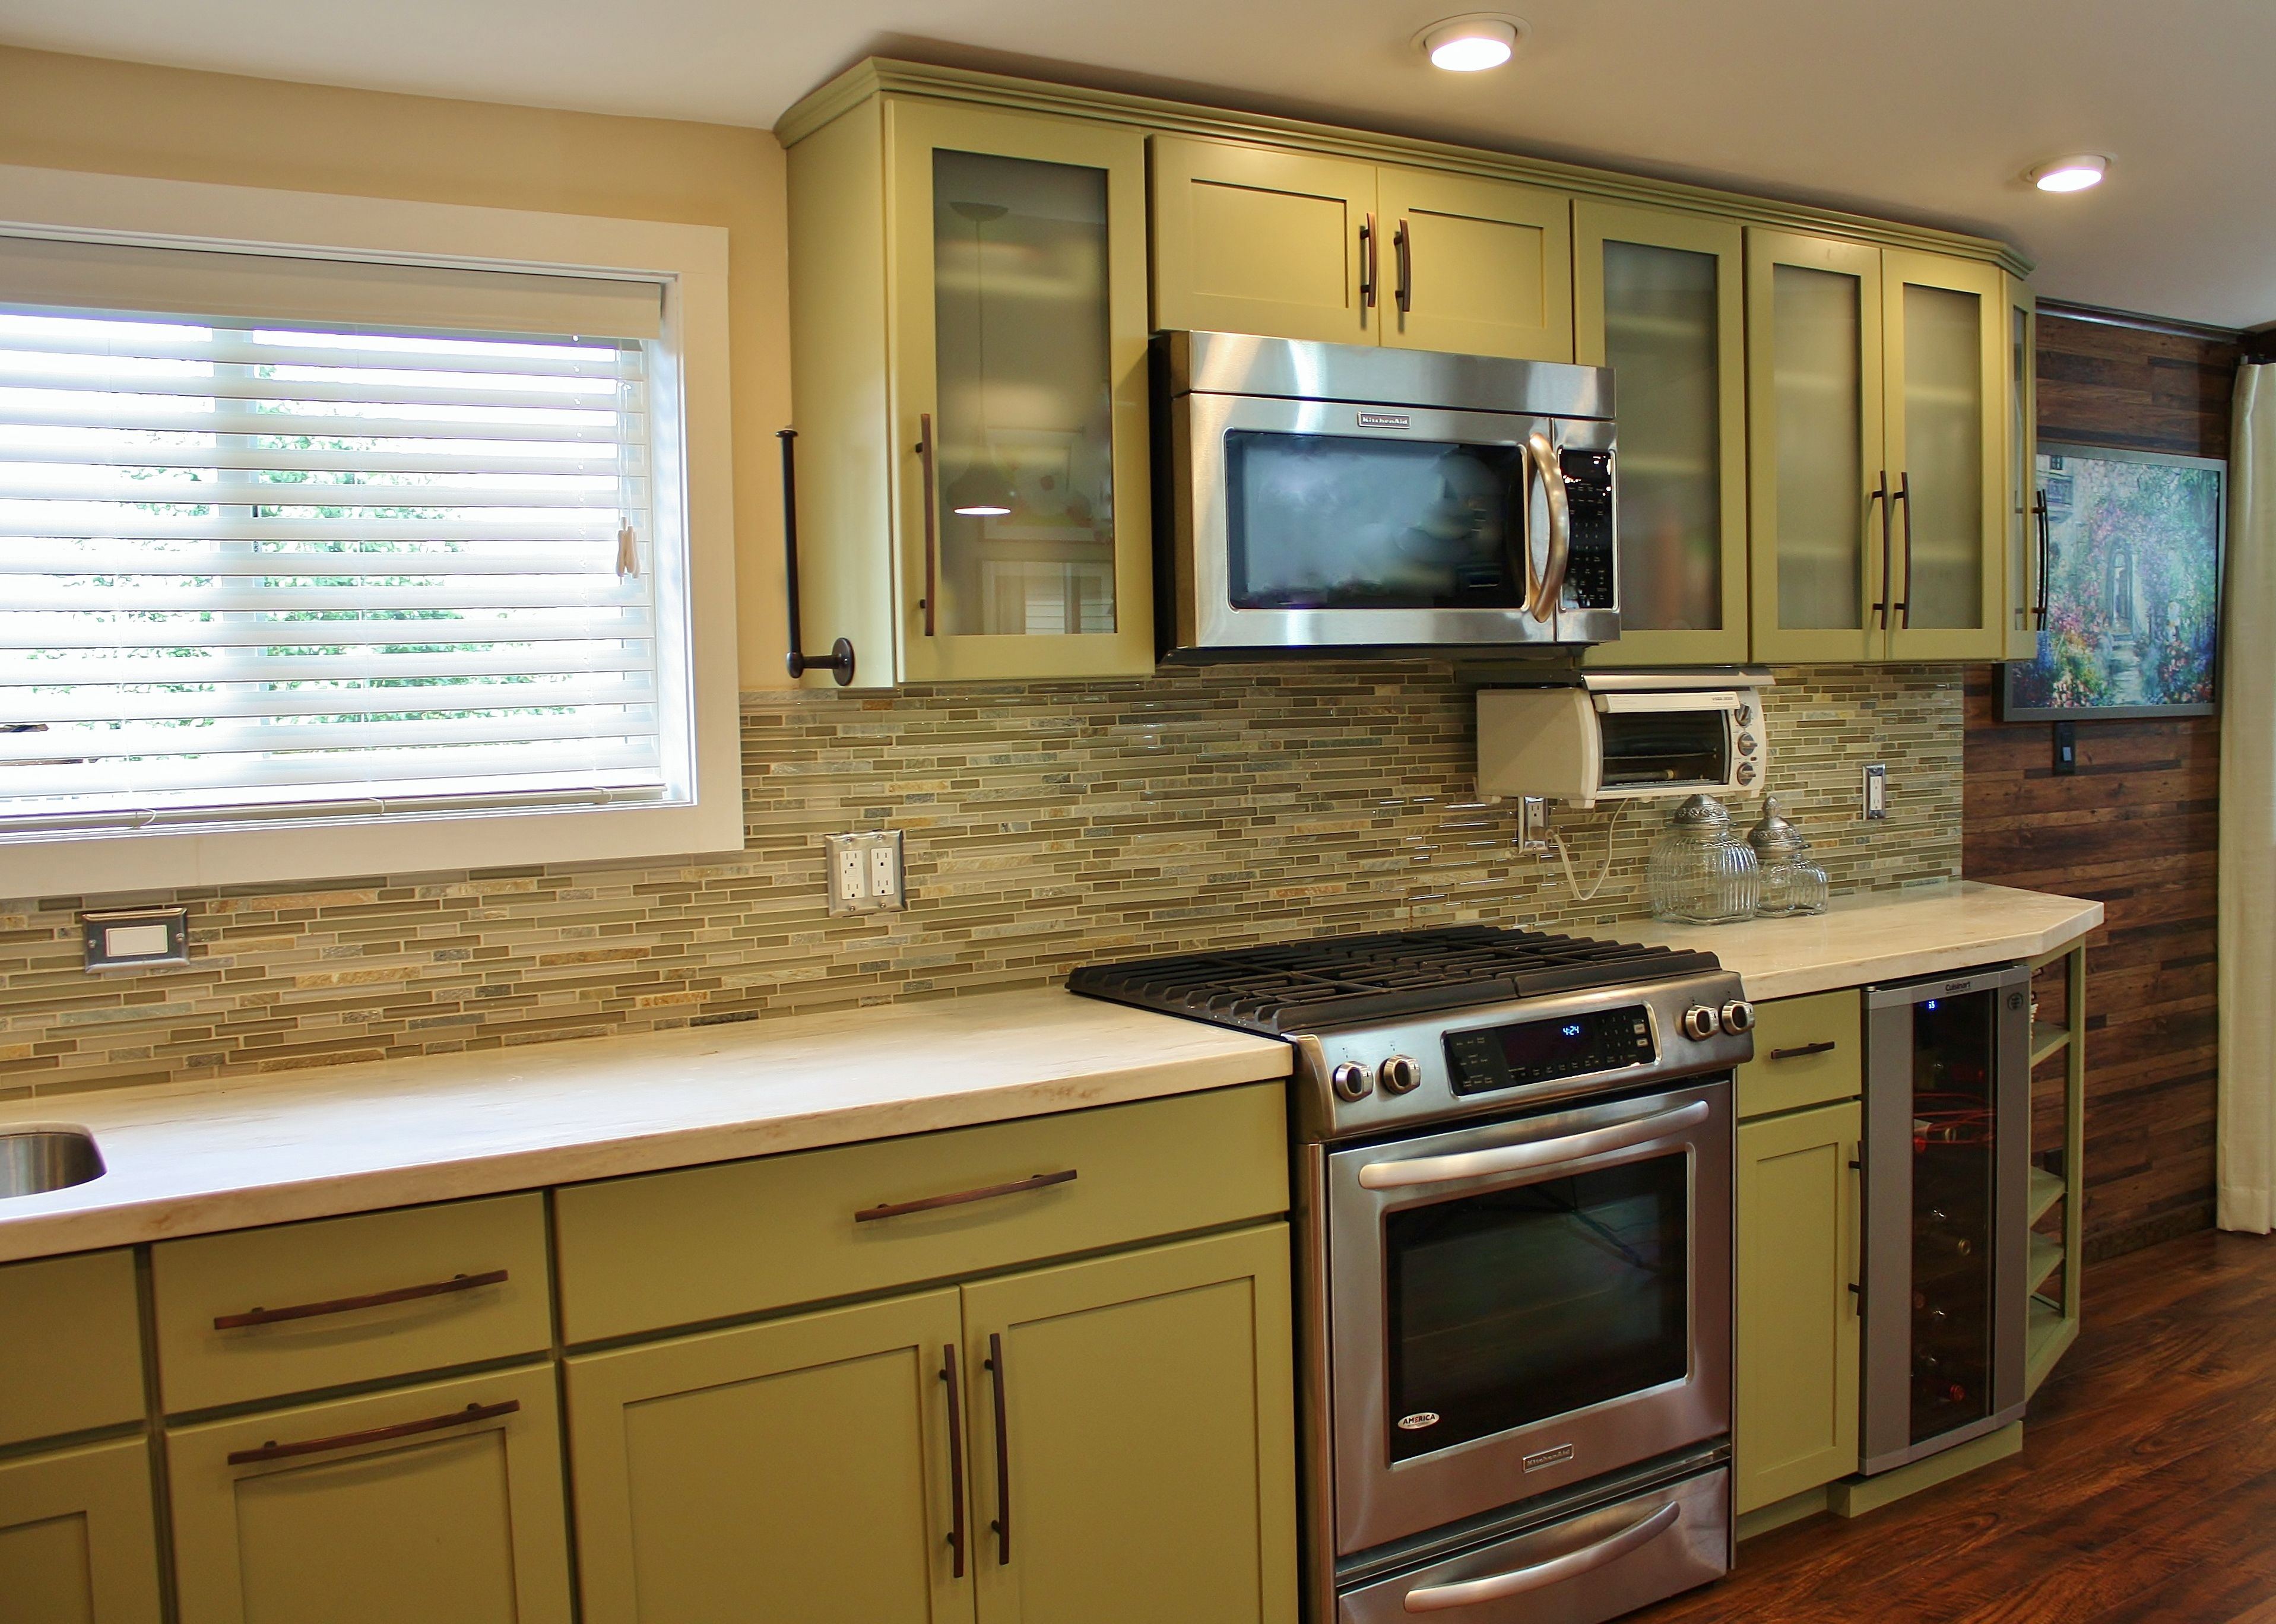 Holiday Kitchens Seattle shaker cabinets Corian solid surface